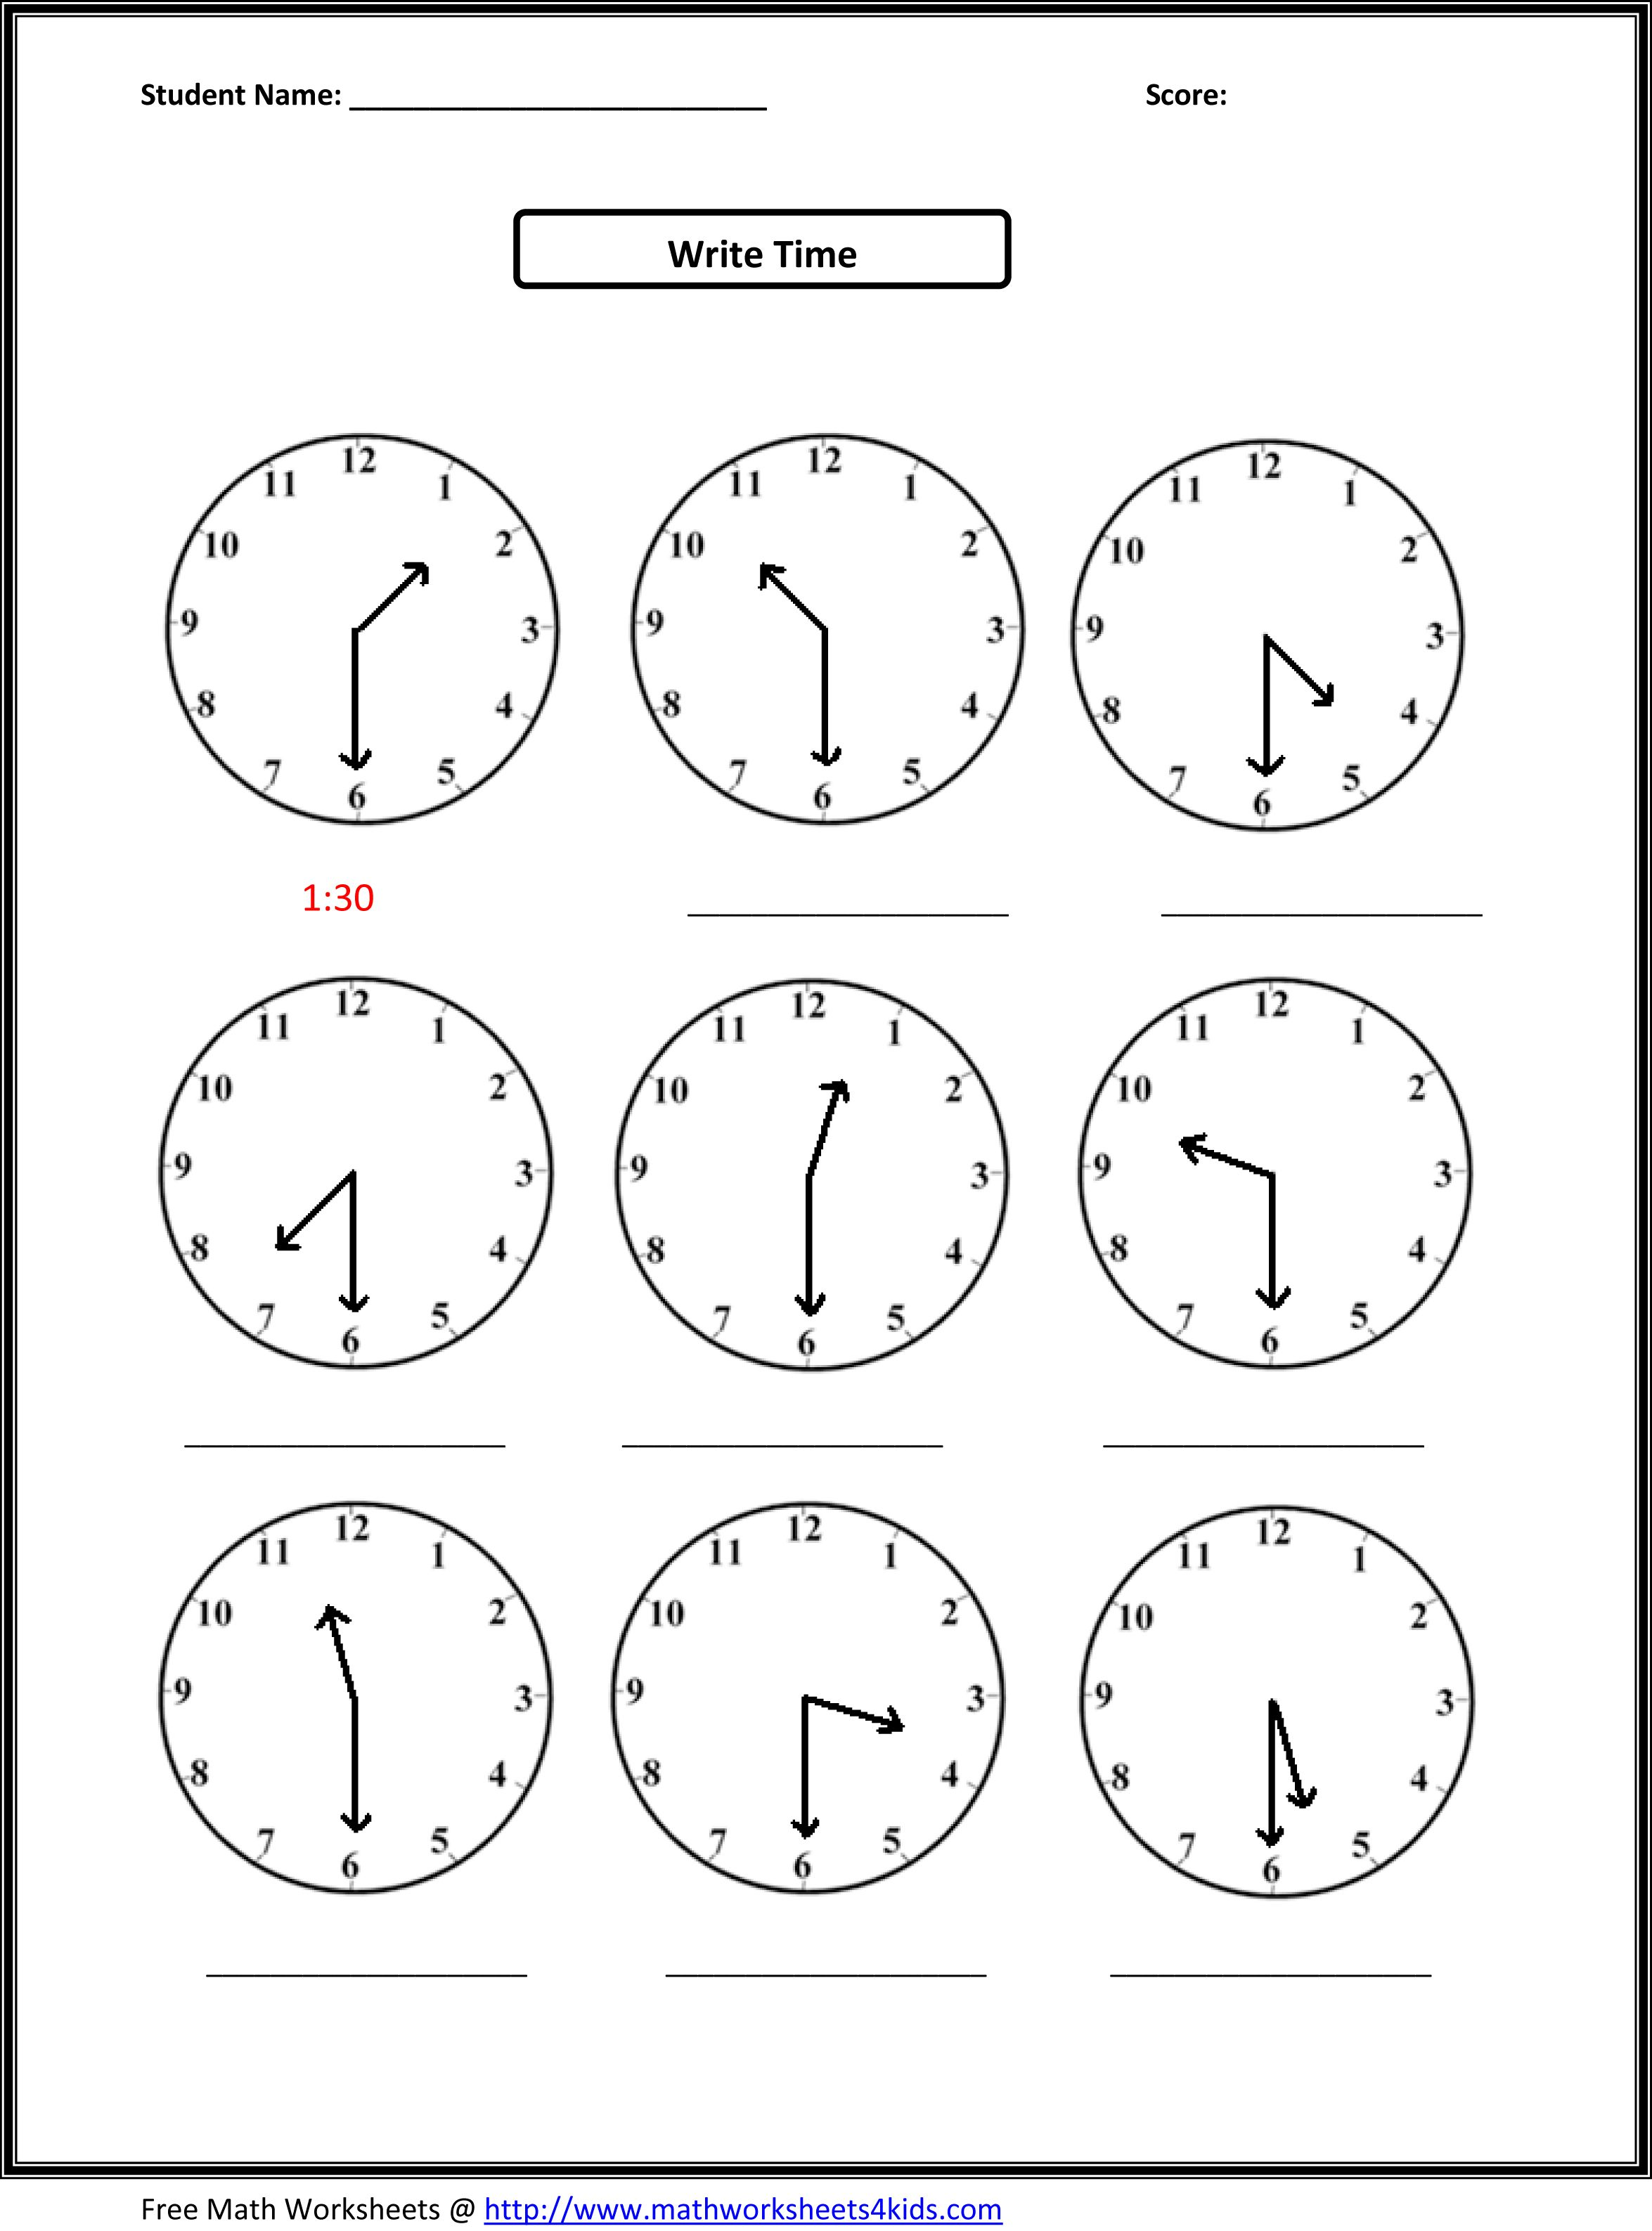 Weirdmailus  Outstanding Worksheet On Time For Grade   Reocurent With Handsome Free Printable Telling Time Worksheets Nd Grade  Reocurent With Enchanting Classification Of Living Organisms Worksheet Also Visual Multiplication Worksheets In Addition Reading Comprehension Multiple Choice Worksheets And Martin Luther King Worksheets Free Printable As Well As Th Grade Math Volume Worksheets Additionally Multiplication Worksheets To Print From Reocurentcom With Weirdmailus  Handsome Worksheet On Time For Grade   Reocurent With Enchanting Free Printable Telling Time Worksheets Nd Grade  Reocurent And Outstanding Classification Of Living Organisms Worksheet Also Visual Multiplication Worksheets In Addition Reading Comprehension Multiple Choice Worksheets From Reocurentcom